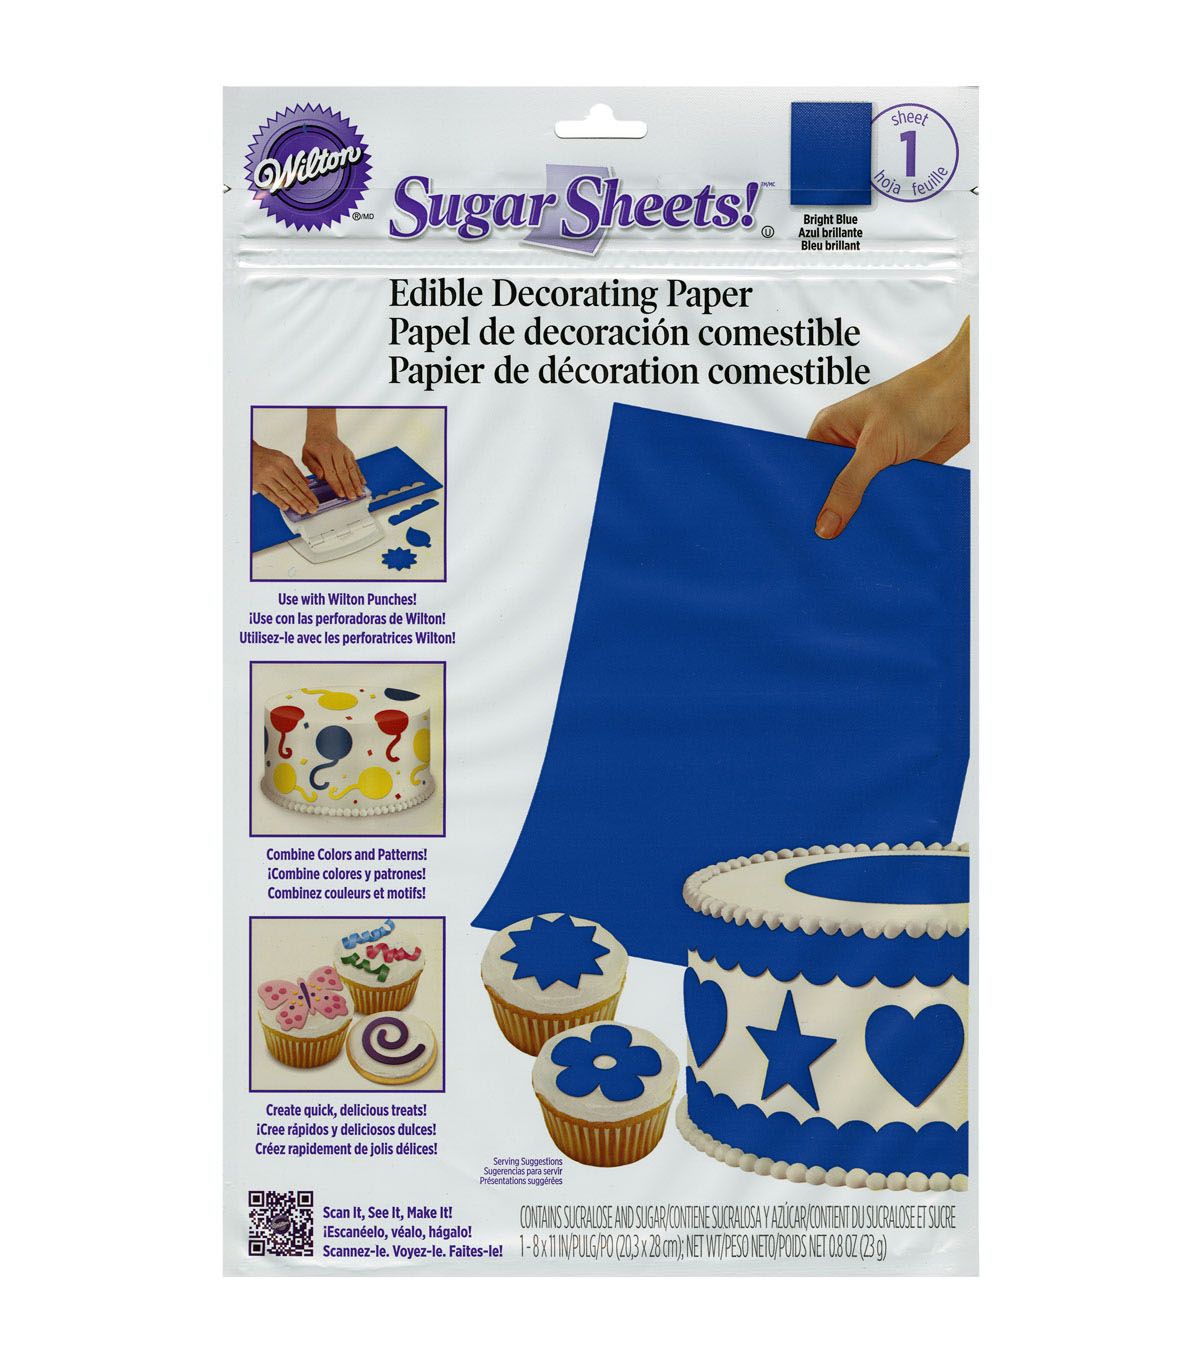 Buy Fondant Icing for Cakes Cupcakes Cookies JOANN